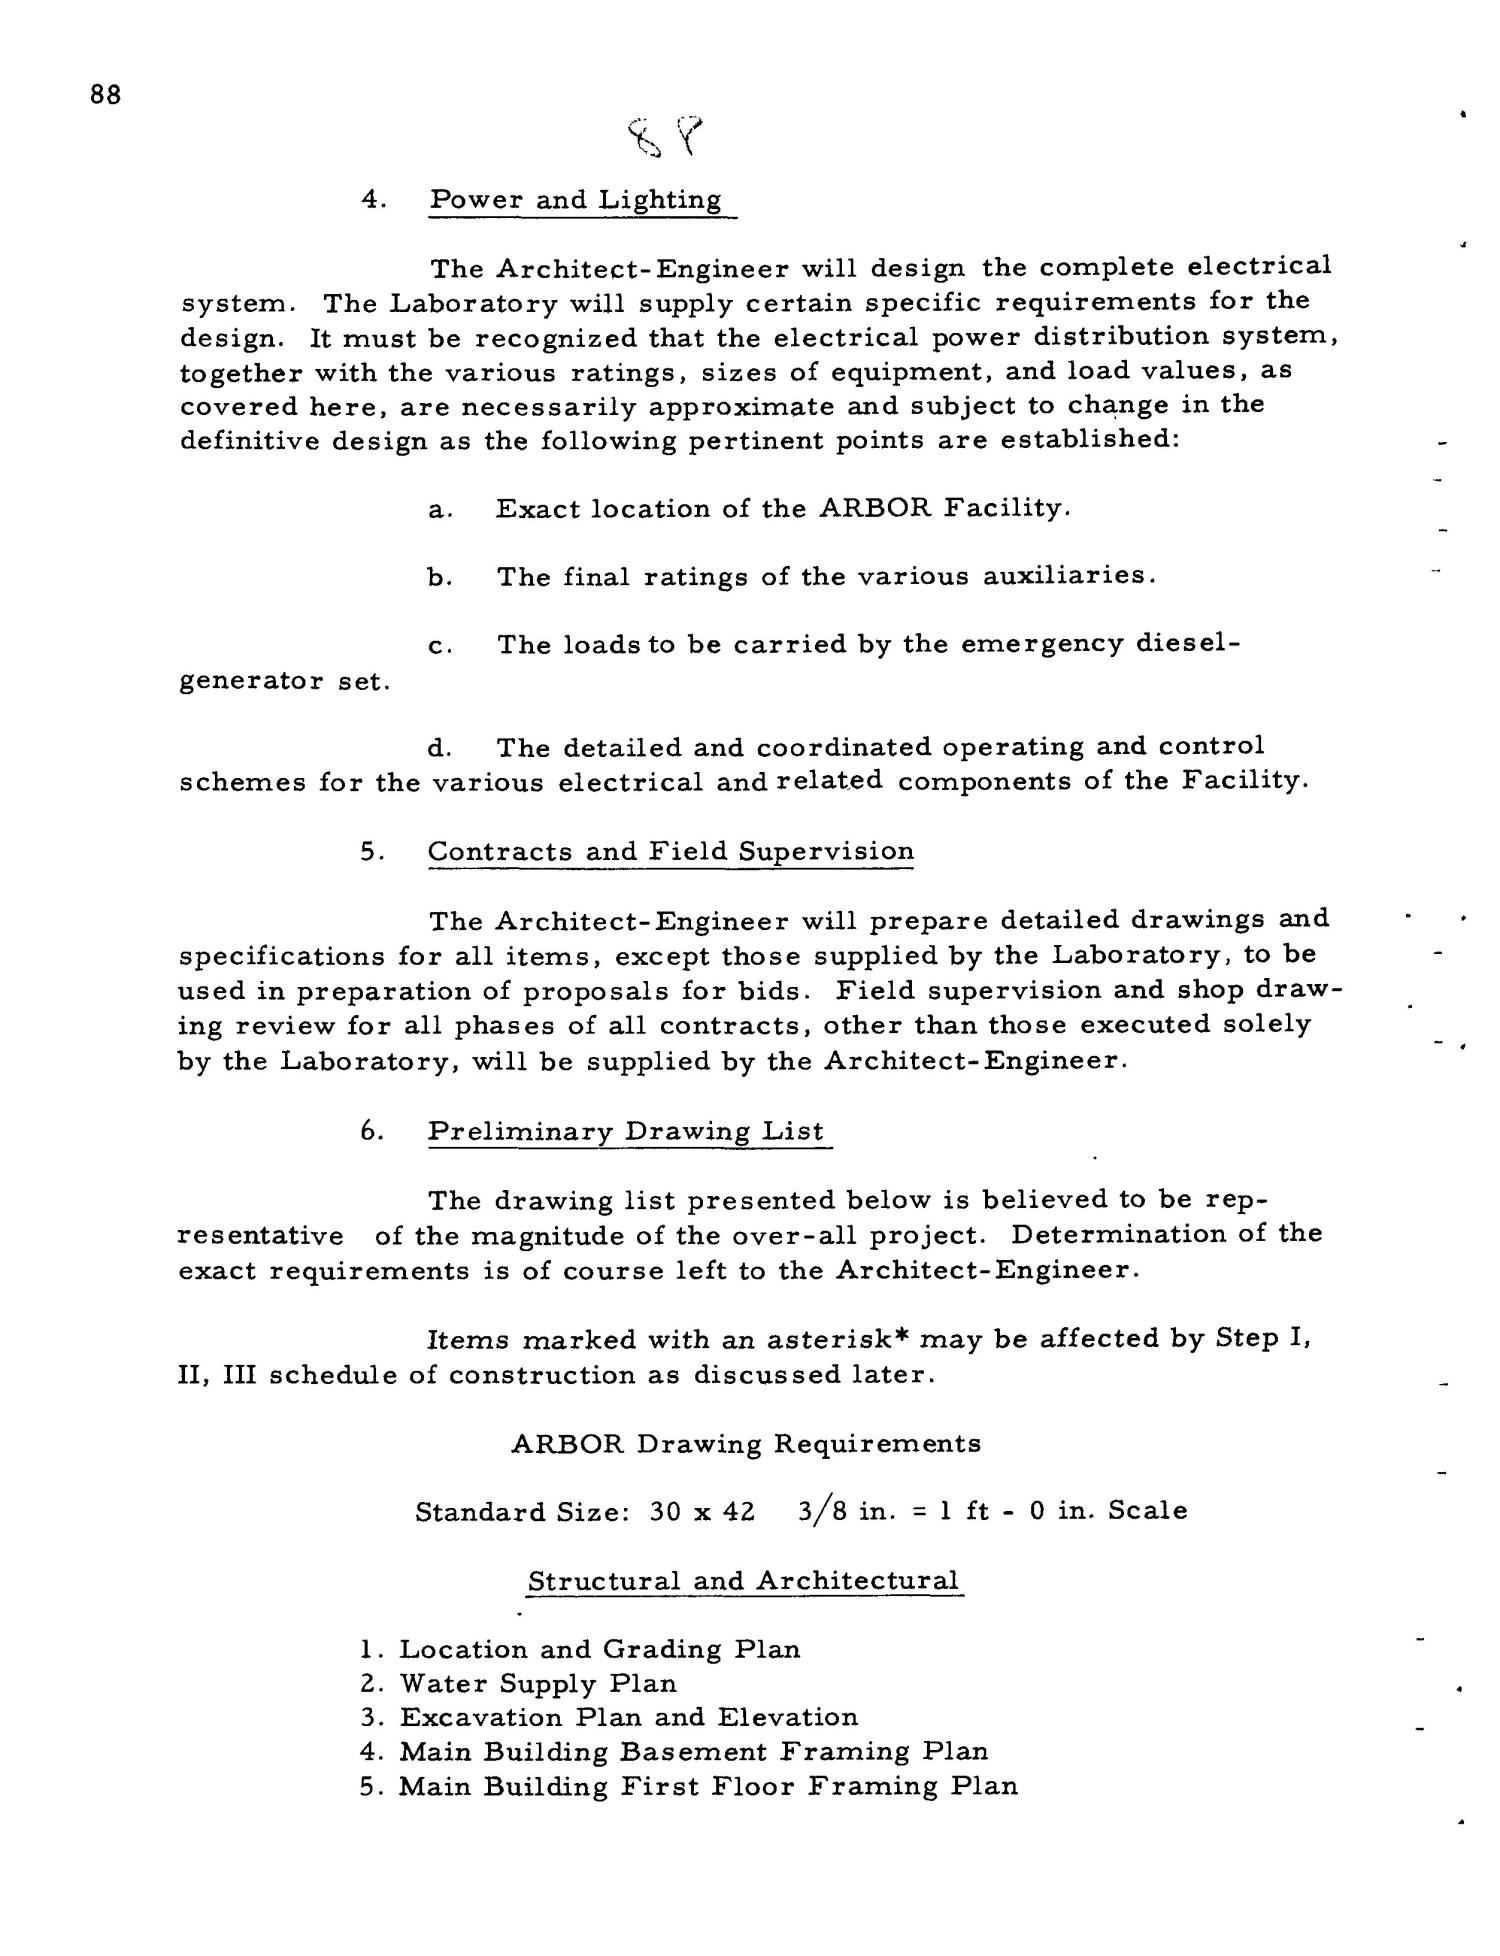 PRELIMINARY DESIGN REQUIREMENTS ARGONNE BOILING REACTOR (ARBOR) FACILITY. Revision I                                                                                                      [Sequence #]: 90 of 161